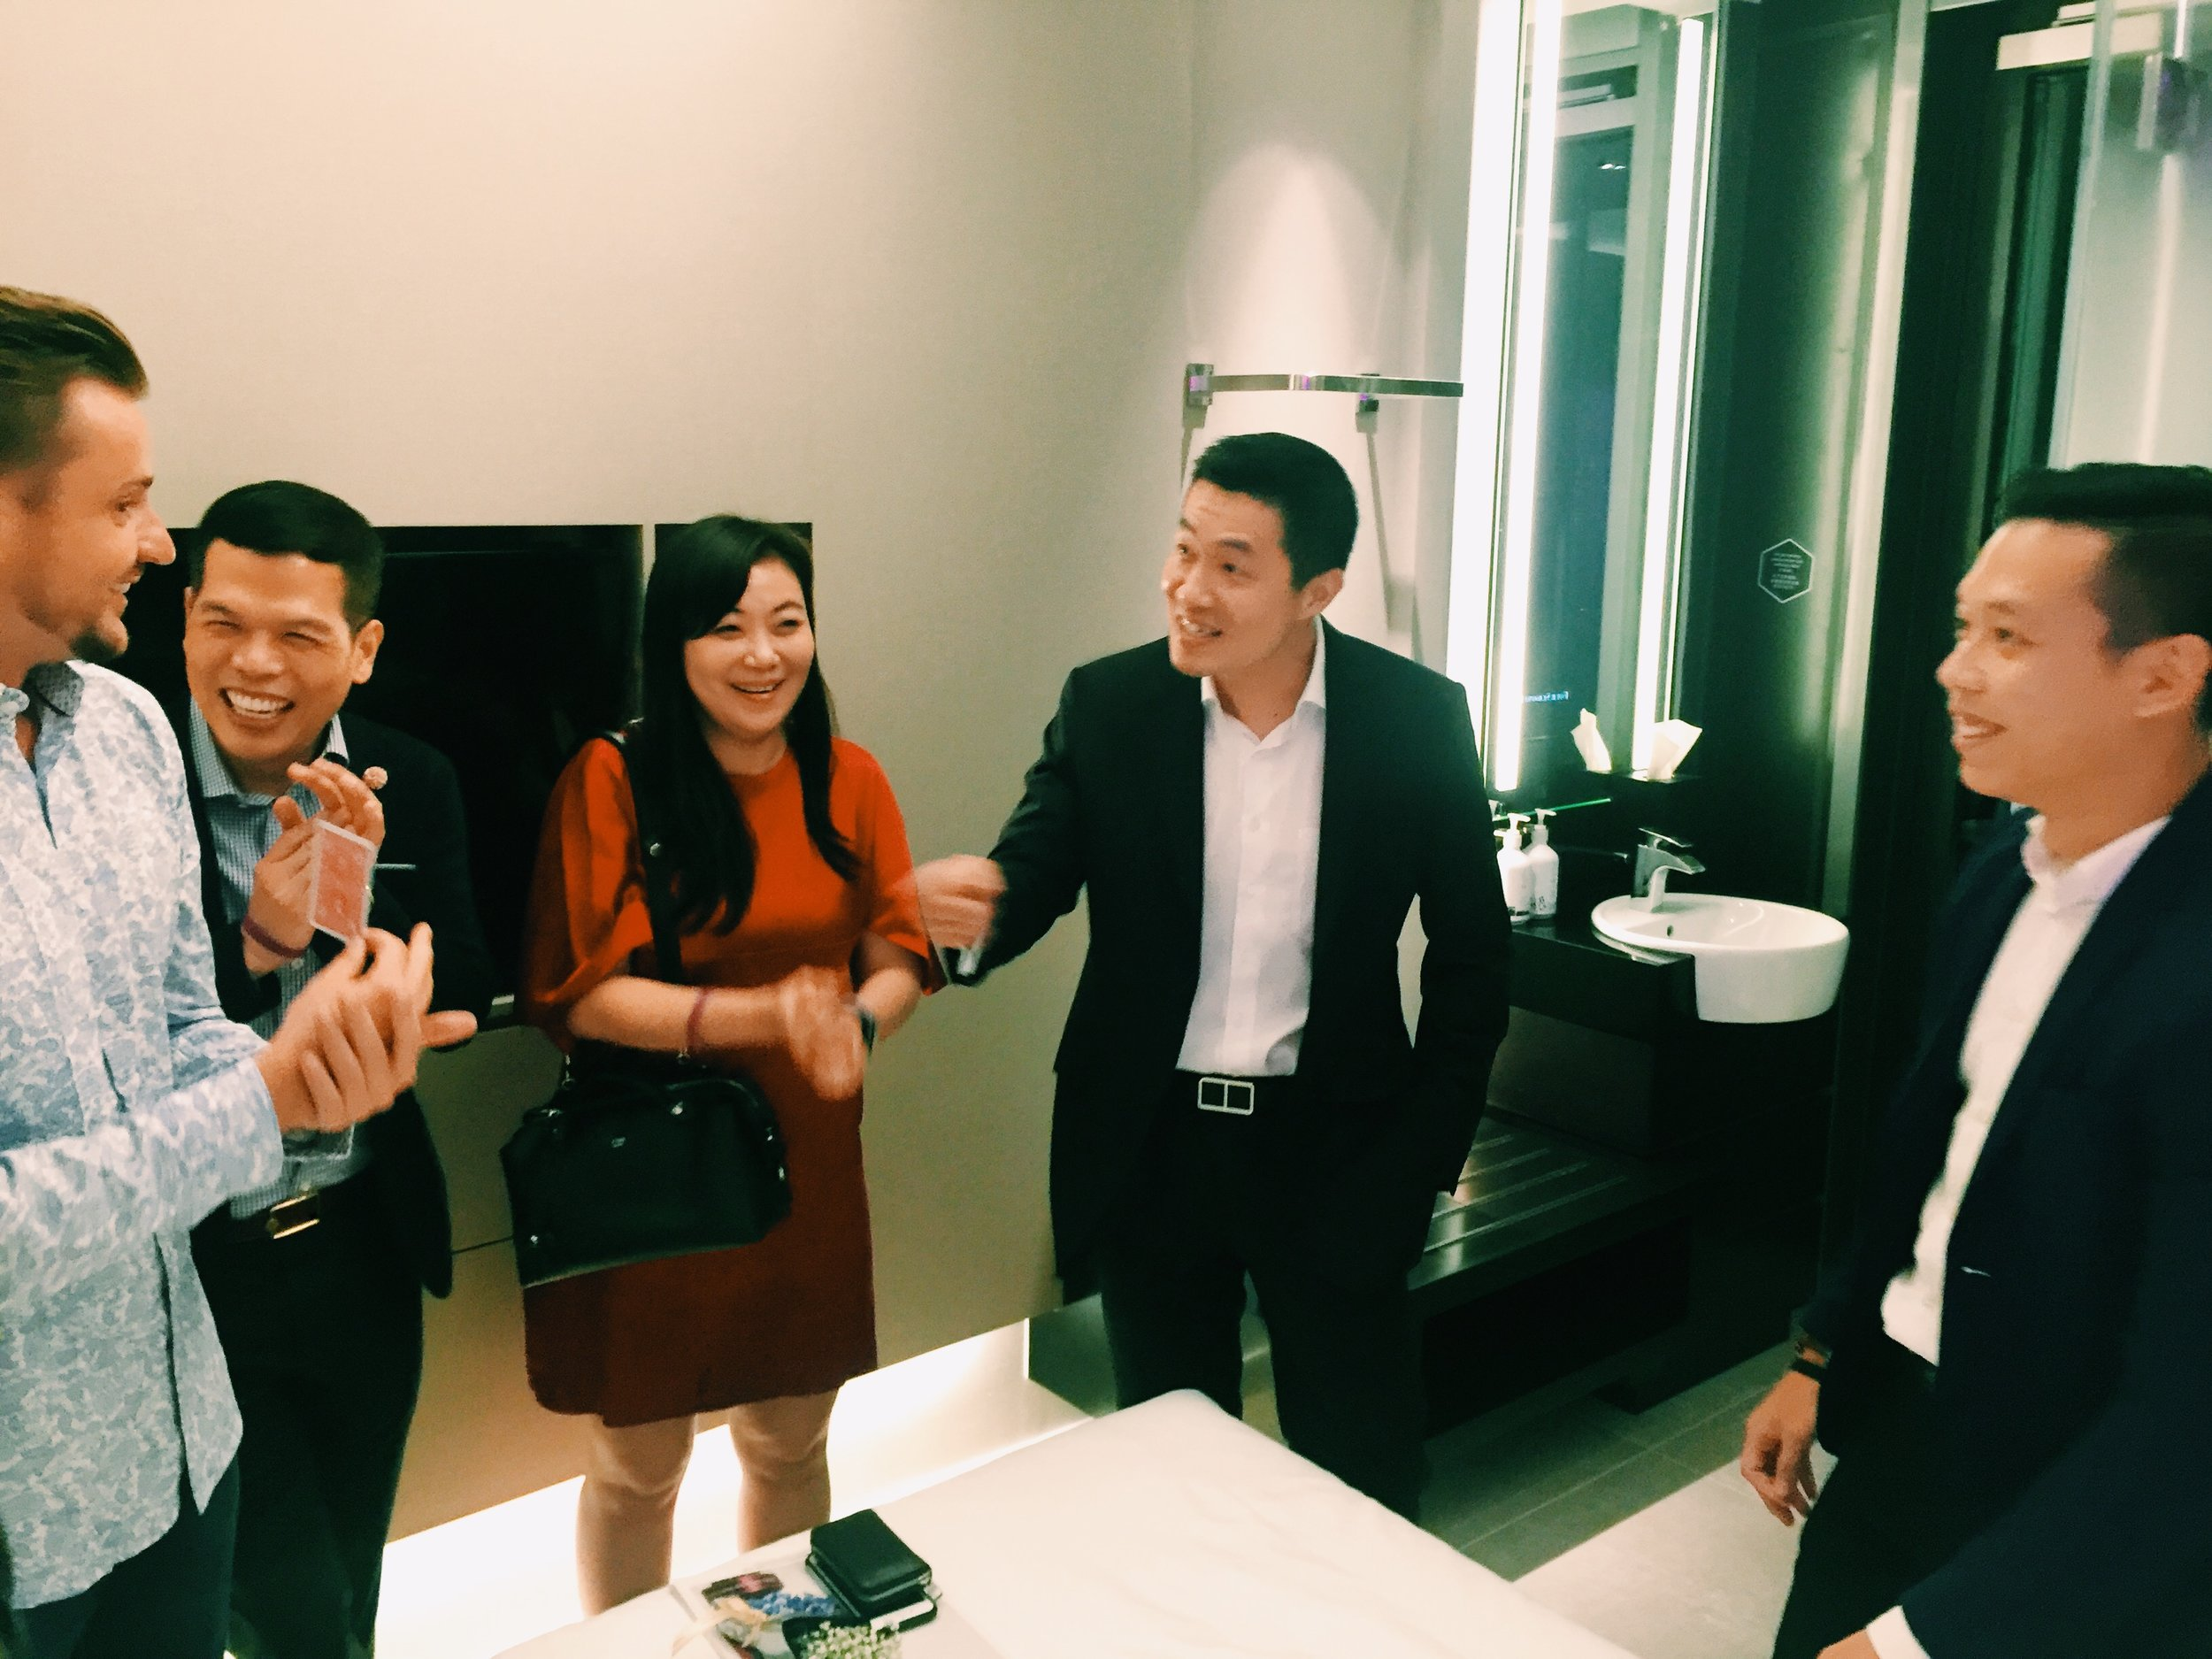 Here we see how Yu Ji's magic astounds and entertains the guests of Yotel!